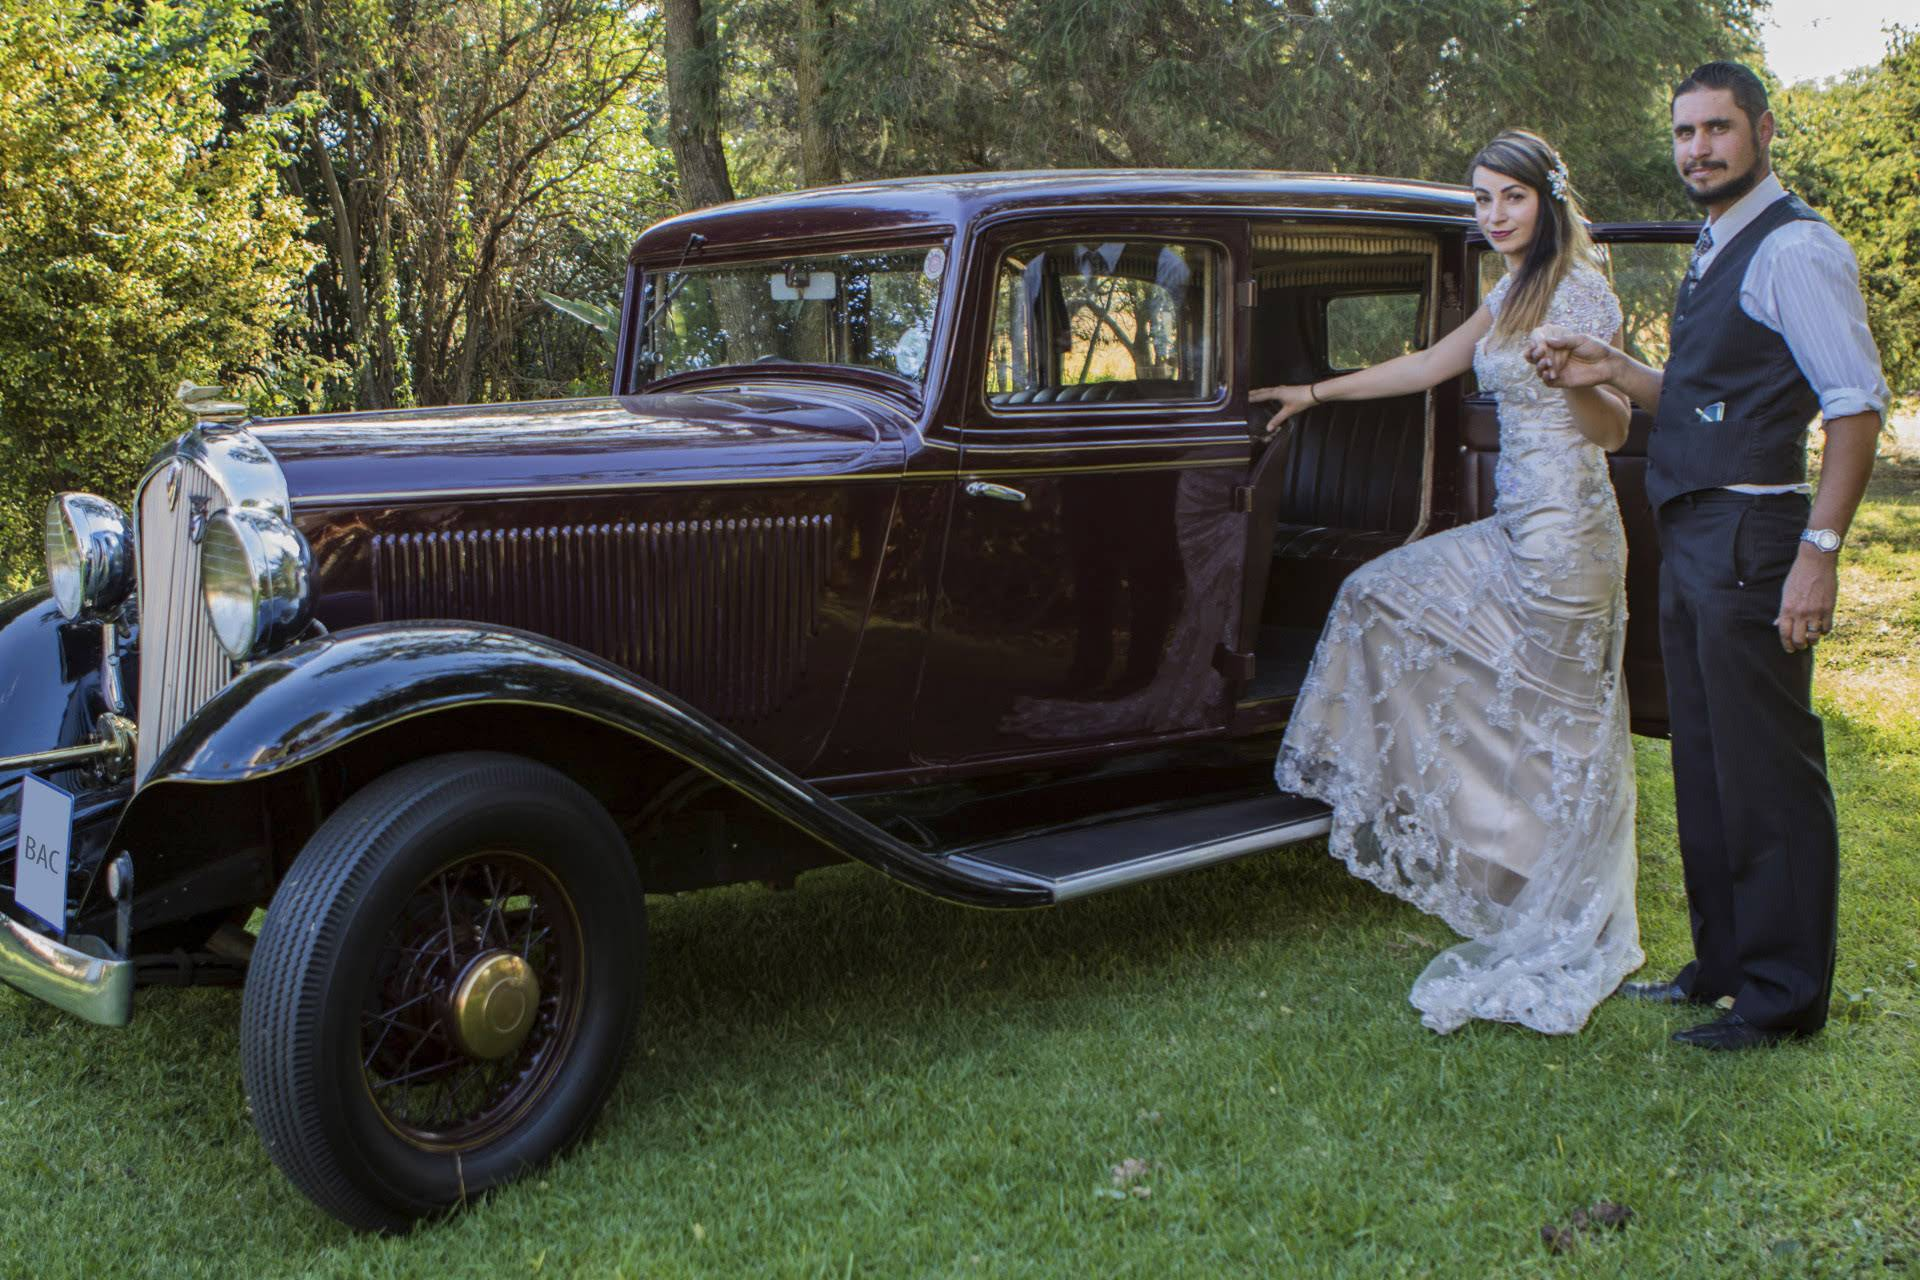 Classic Car Rental and Vintage Cars for Hire - BookAclassic.co.za